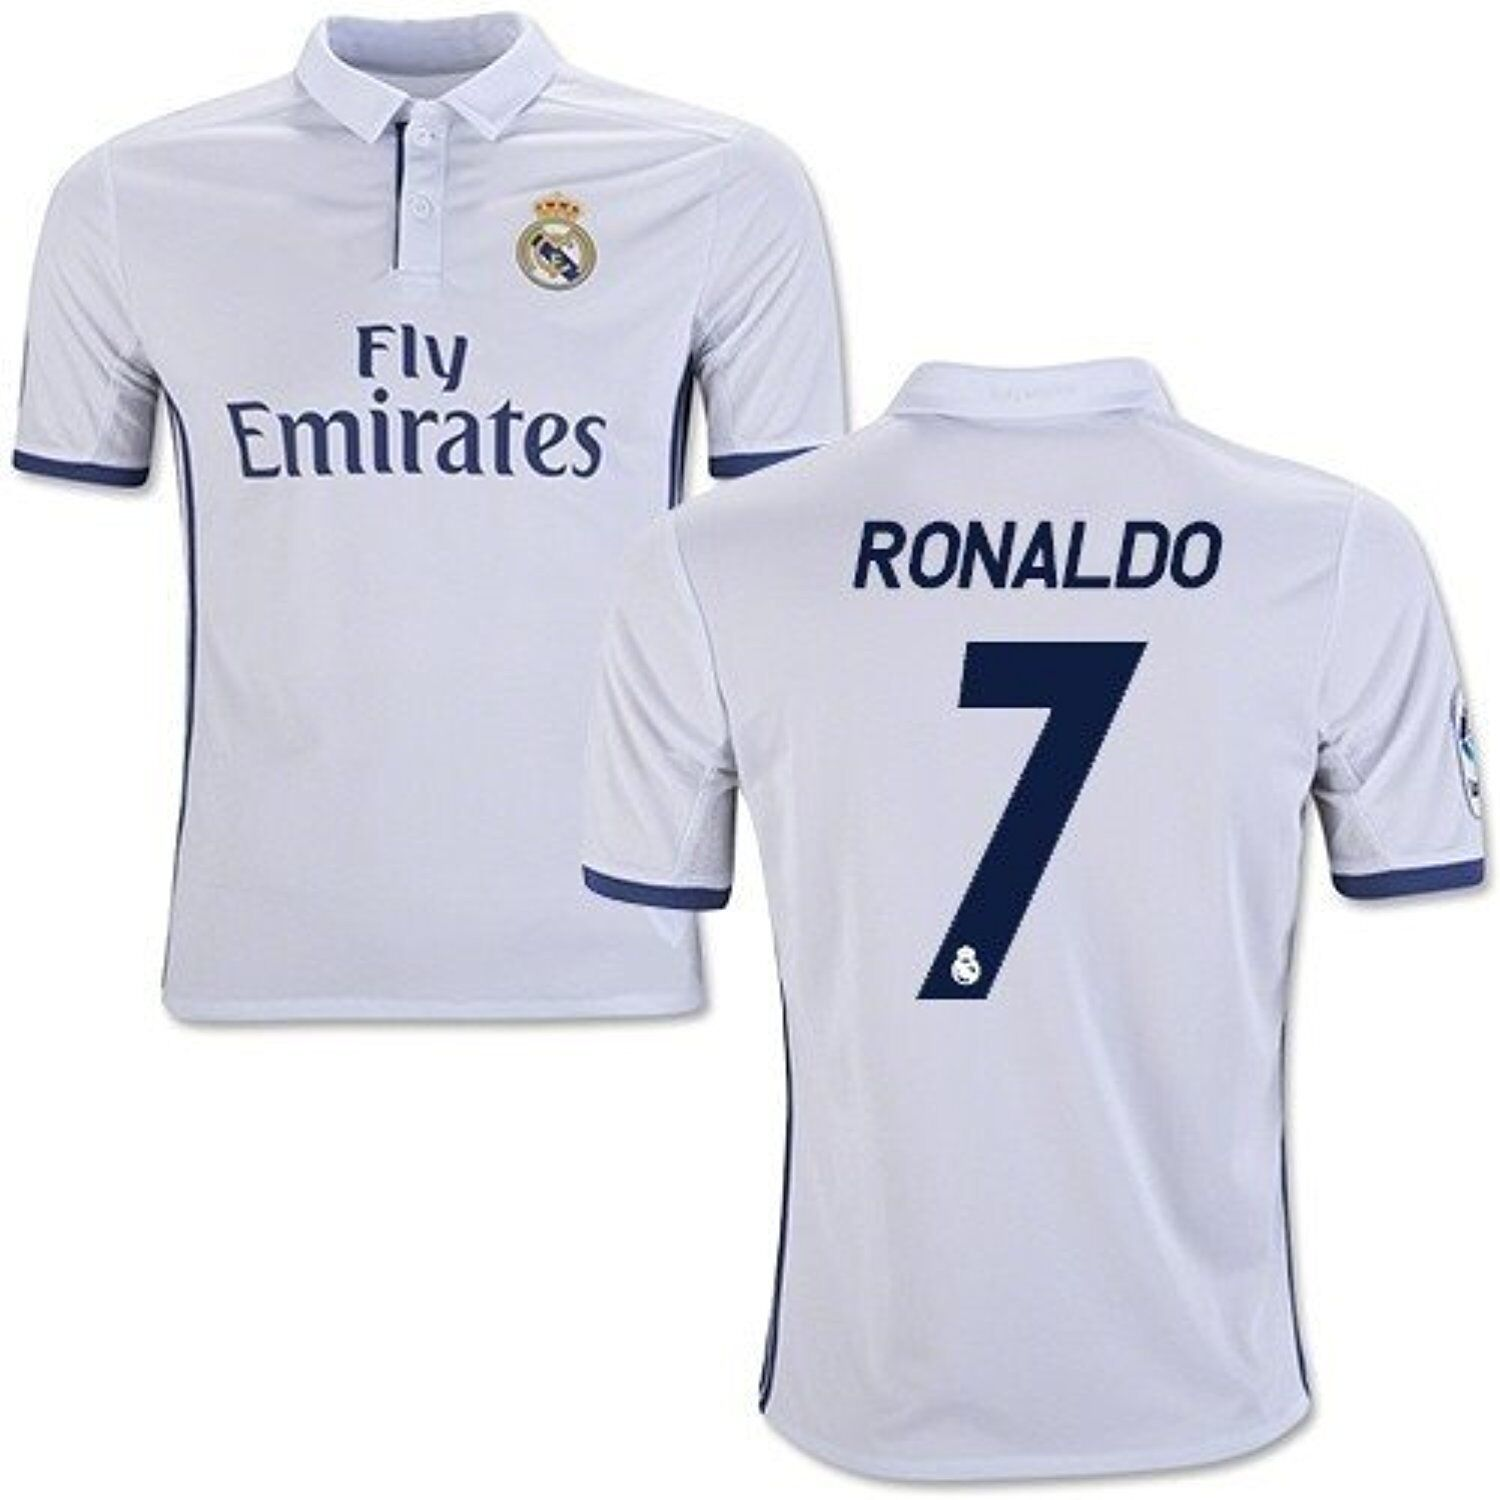 best website 6ae7b 596ea New Real Madrid Home Cristiano Ronaldo Soccer Jersey football Shirt